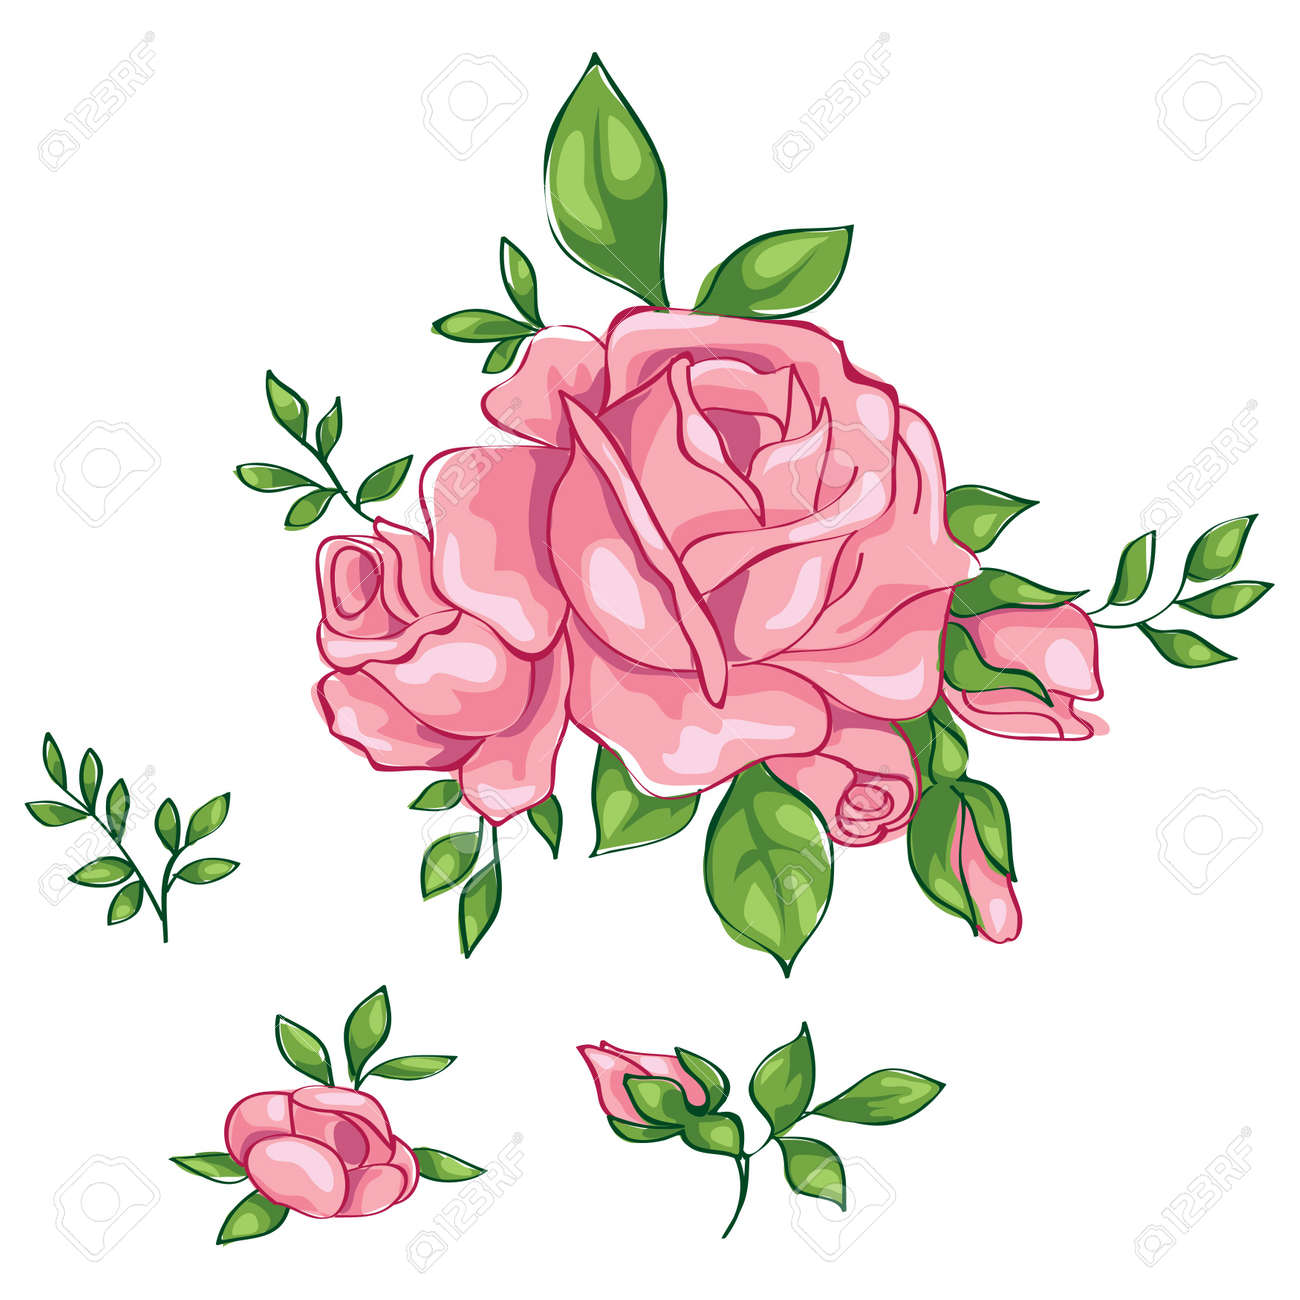 roses vintage royalty free cliparts vectors and stock illustration rh 123rf com vector ross cook victor roseski